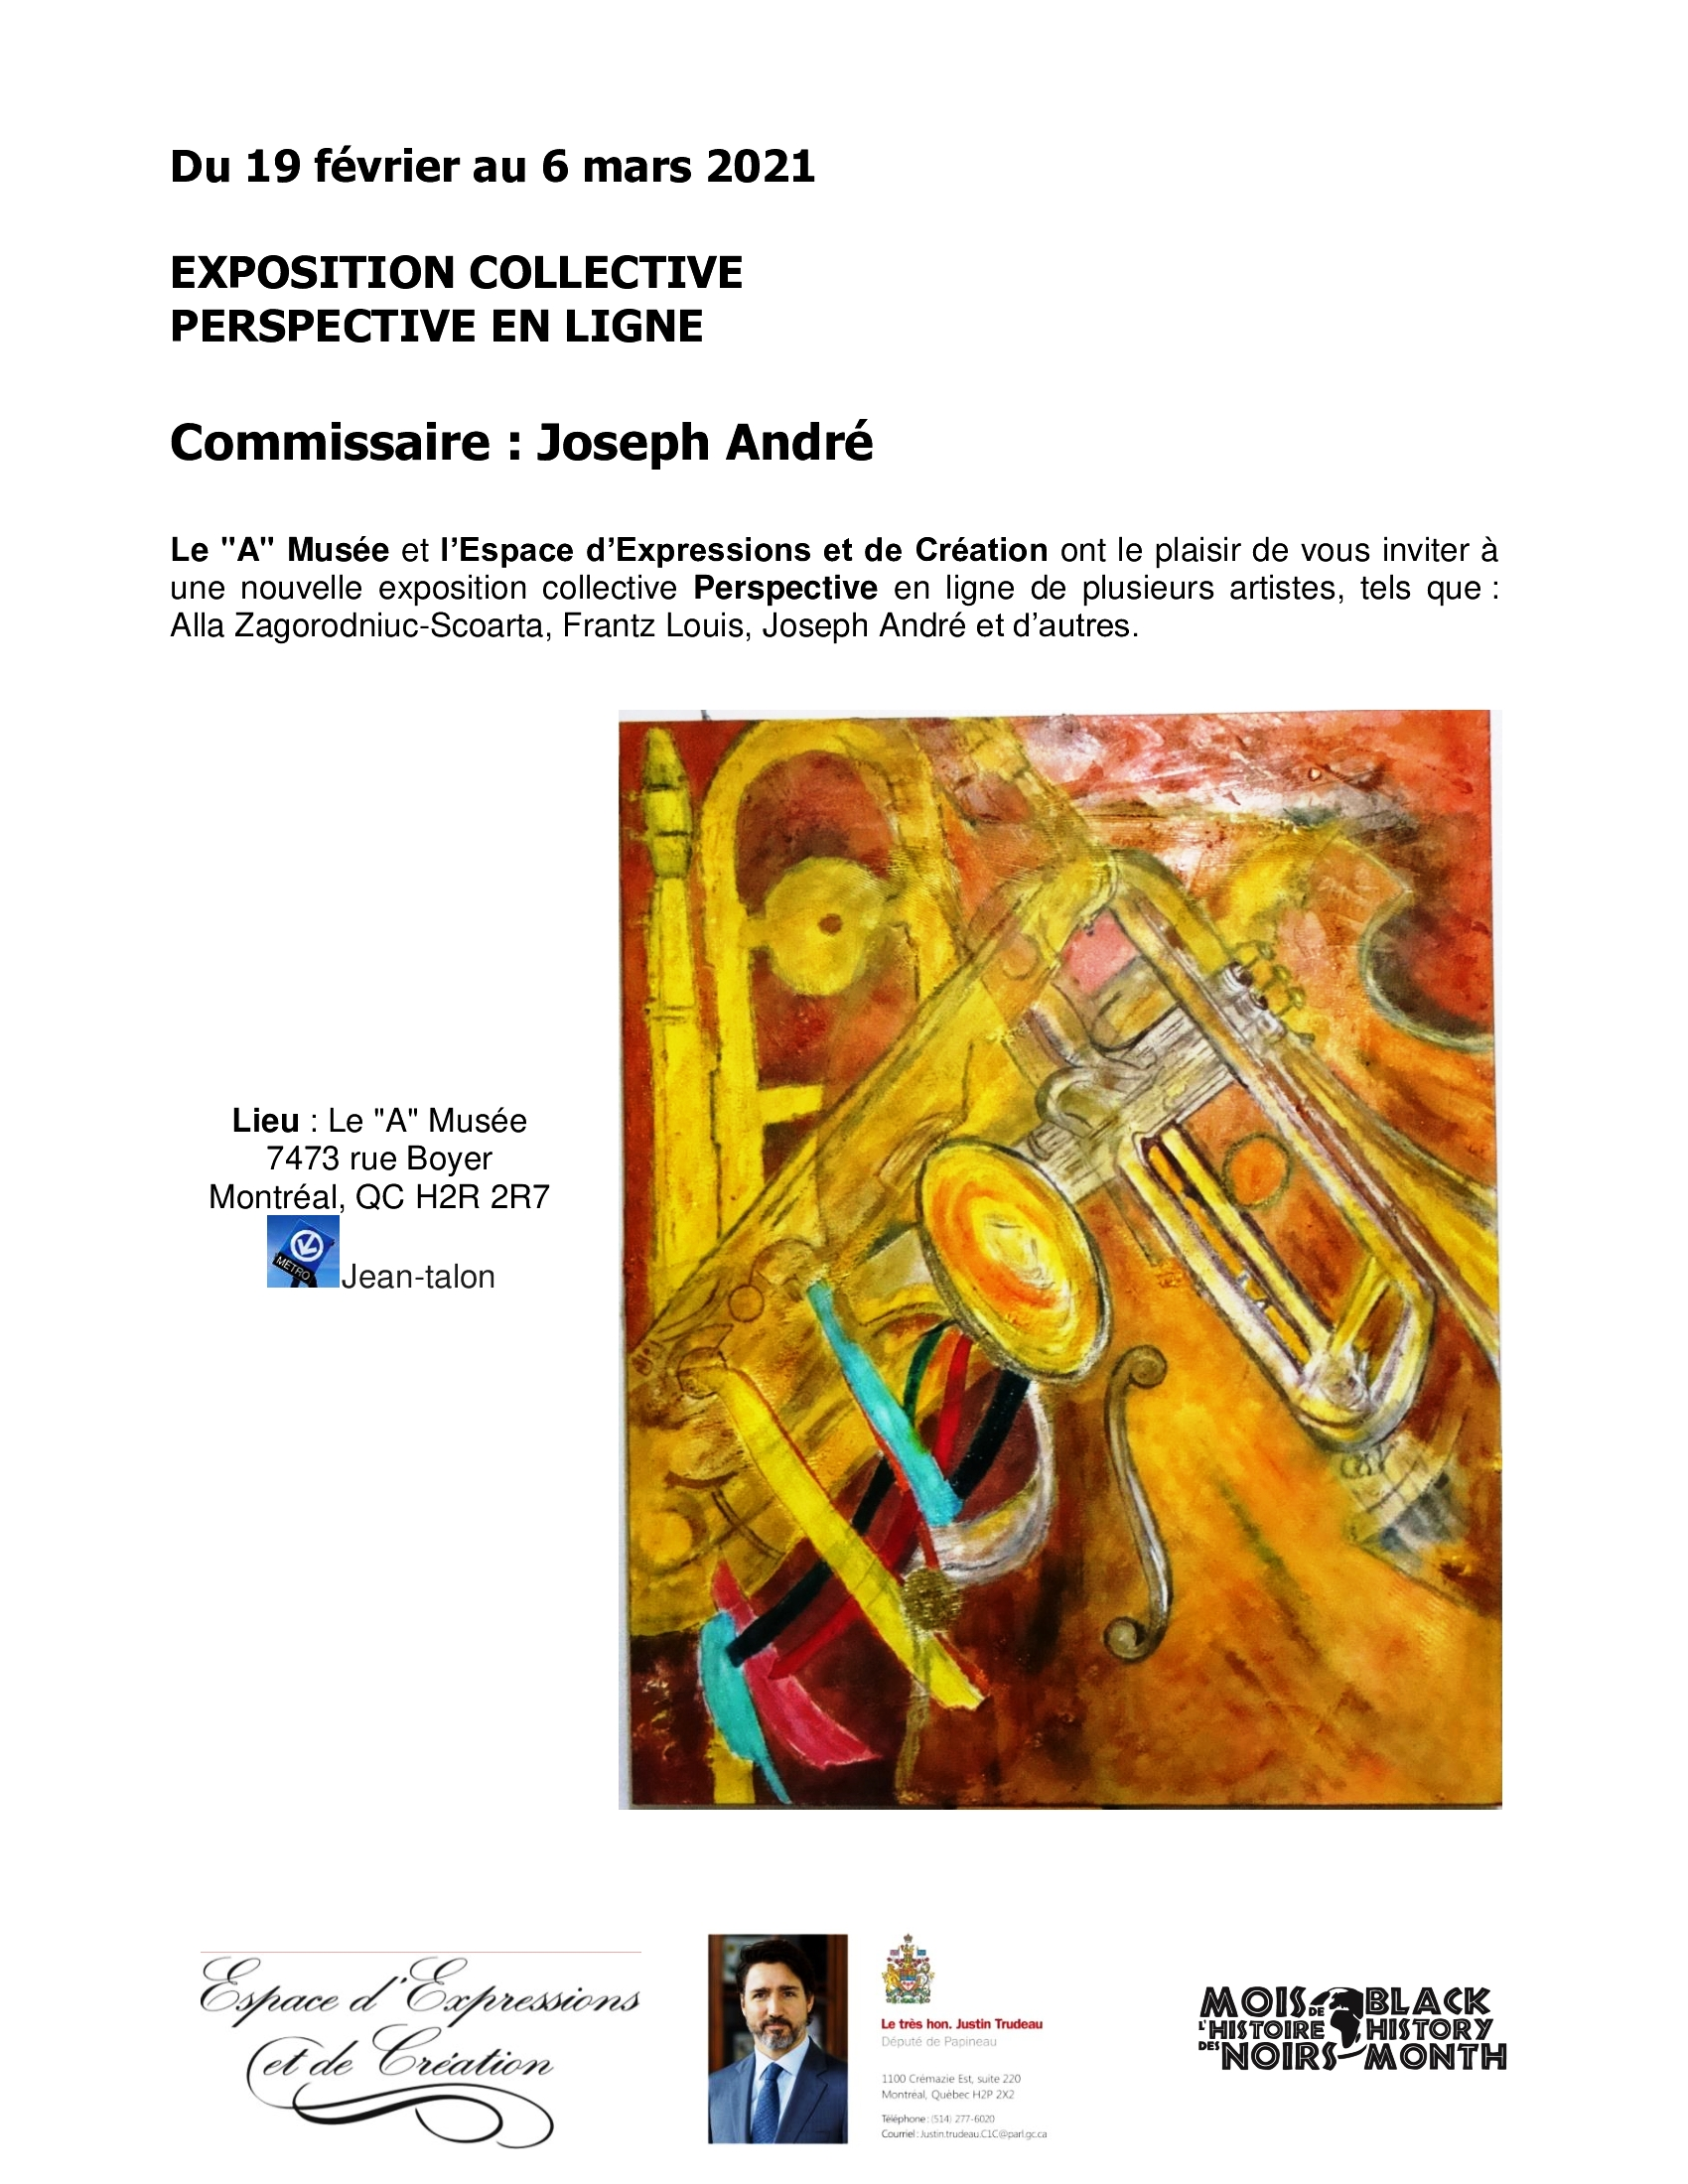 Exposition collective Perspective